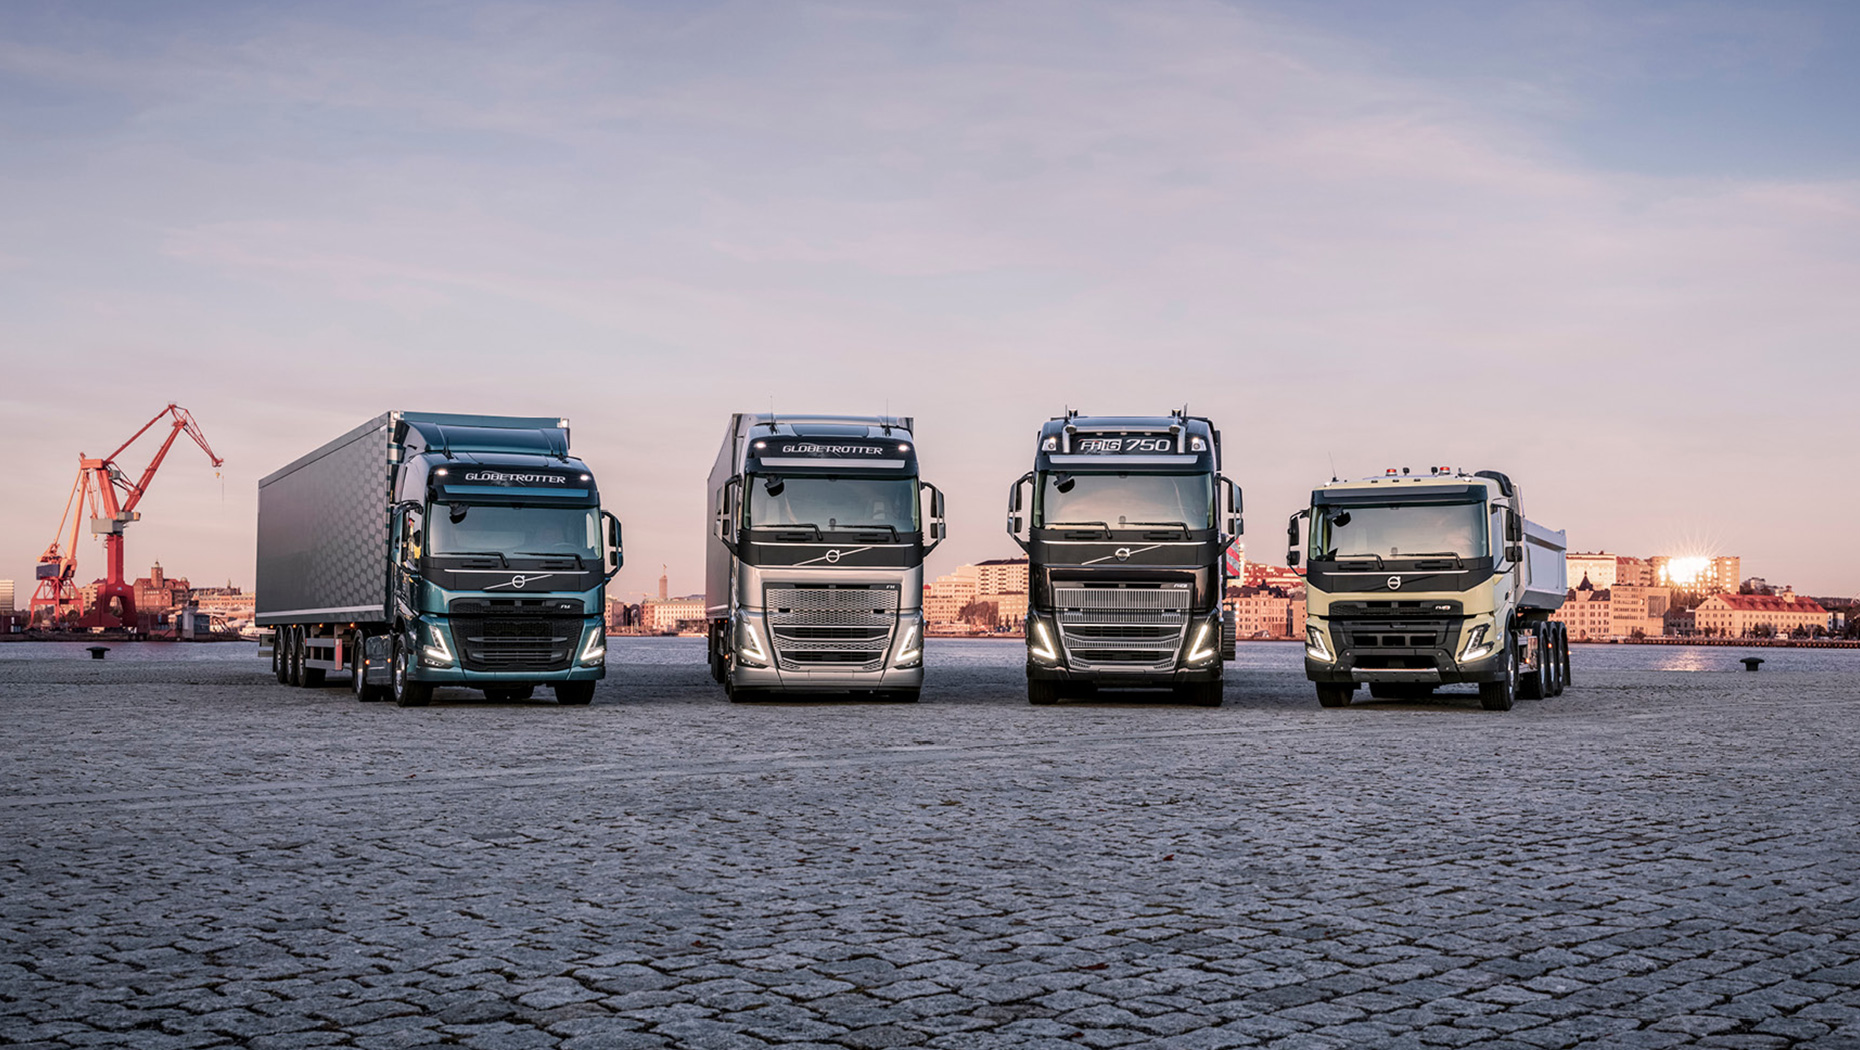 Volvo Trucks Launches New Generation Of Heavy Duty Trucks With The Driver In Focus